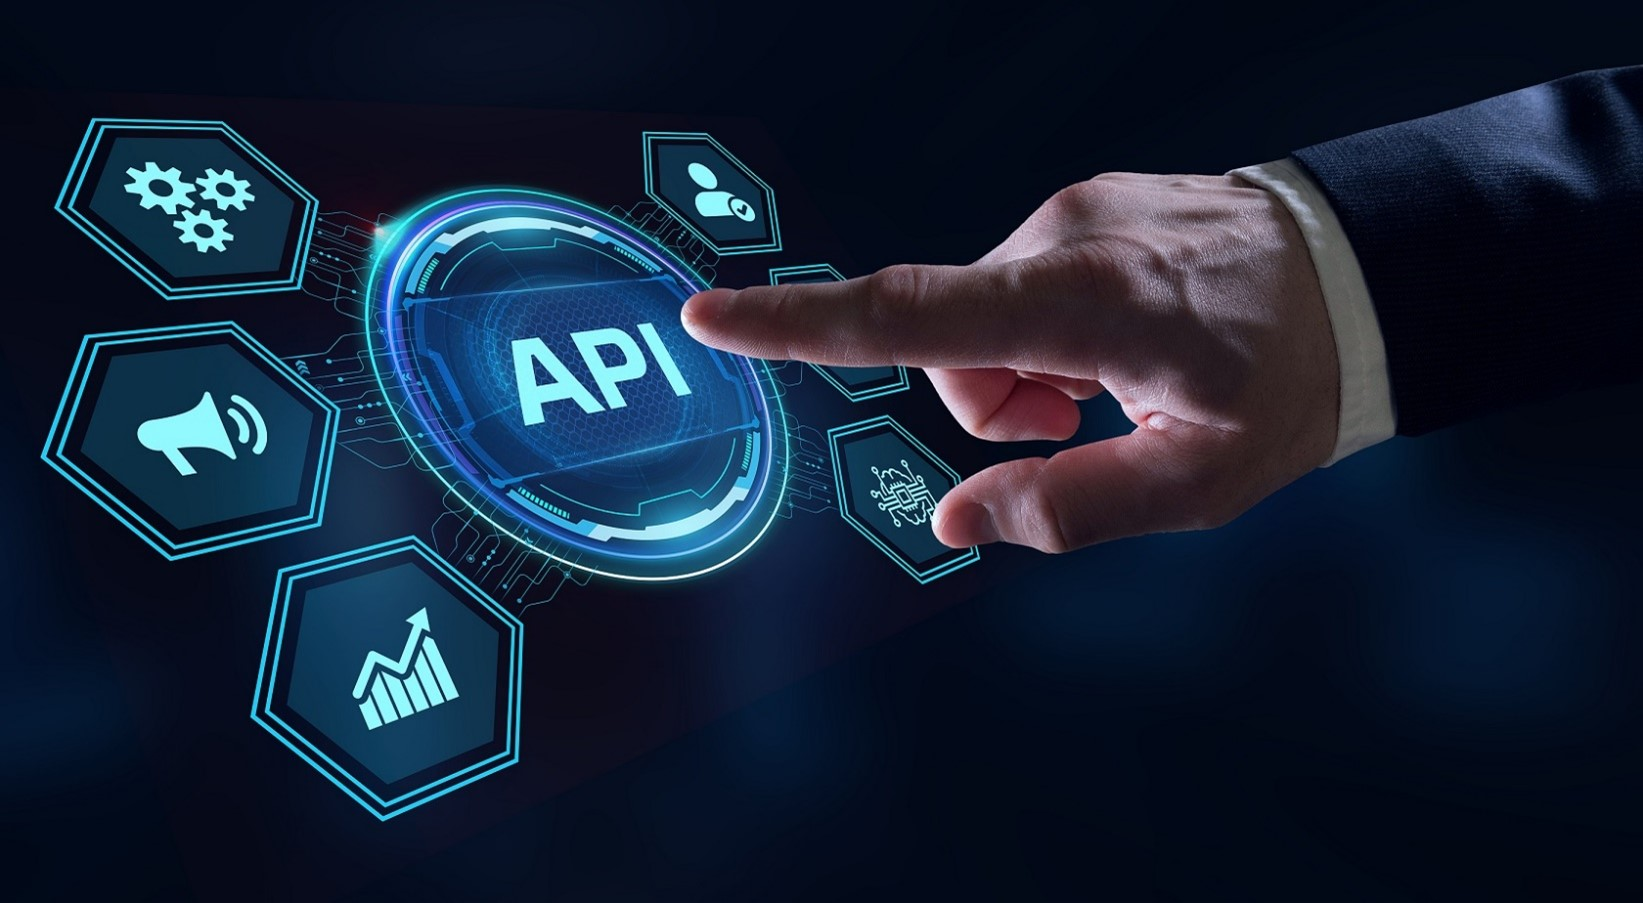 A picture of business OCR solutions, featuring a hand hovering over API integration software icon